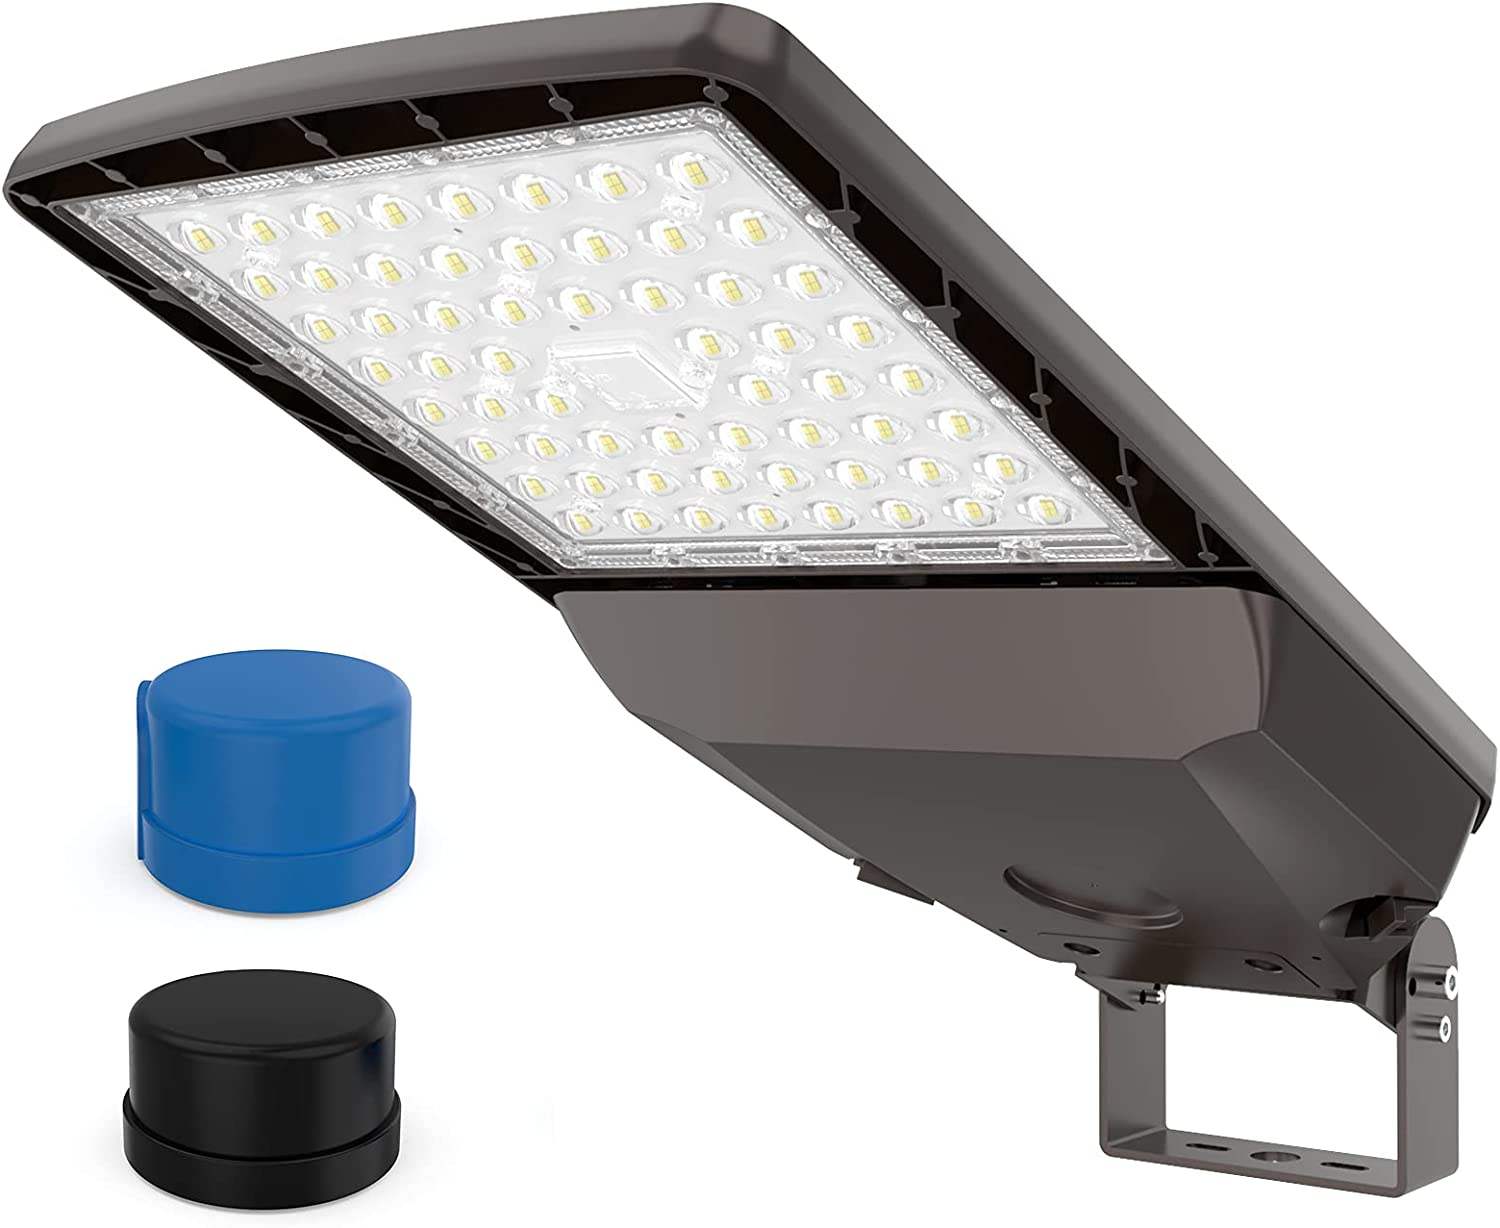 HYPERLITE Parking Lot Lights with Dusk to Dawn Photocell 100W 15